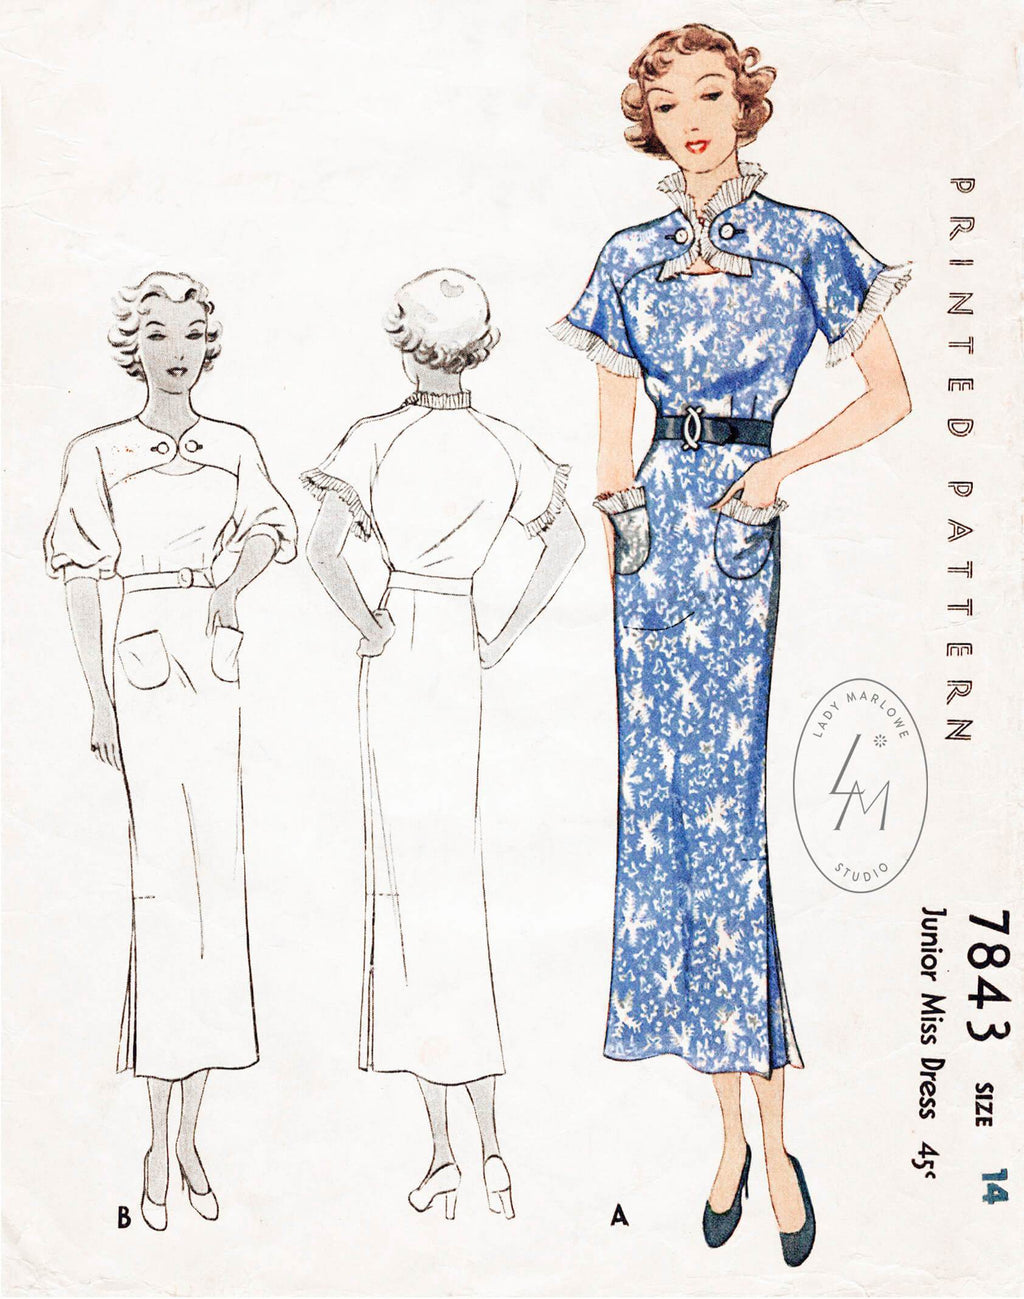 McCall 7843 1930s dress vintage sewing pattern 1930 30s